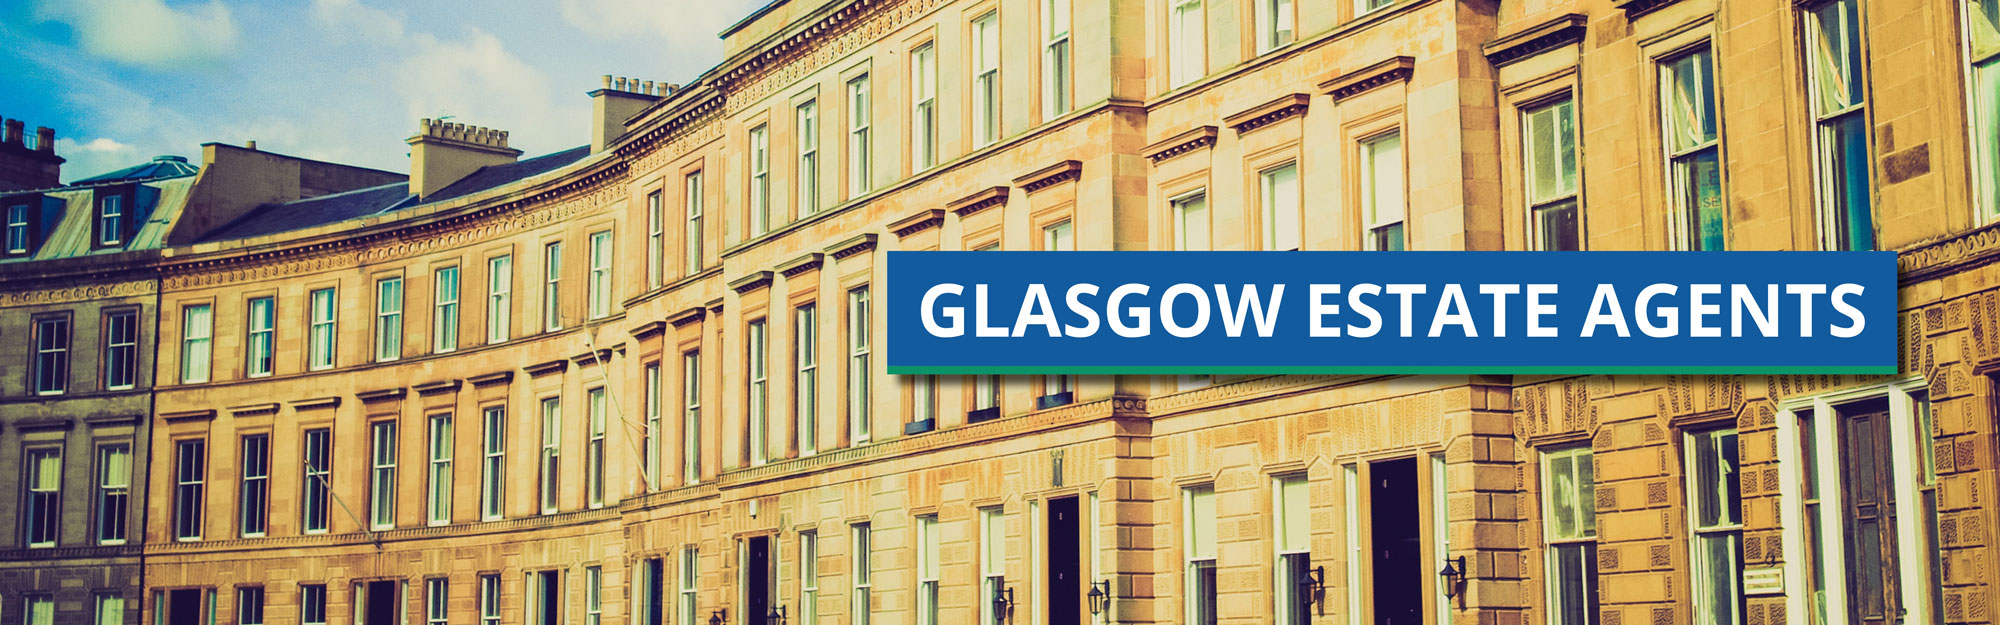 Glasgow Estate Agents